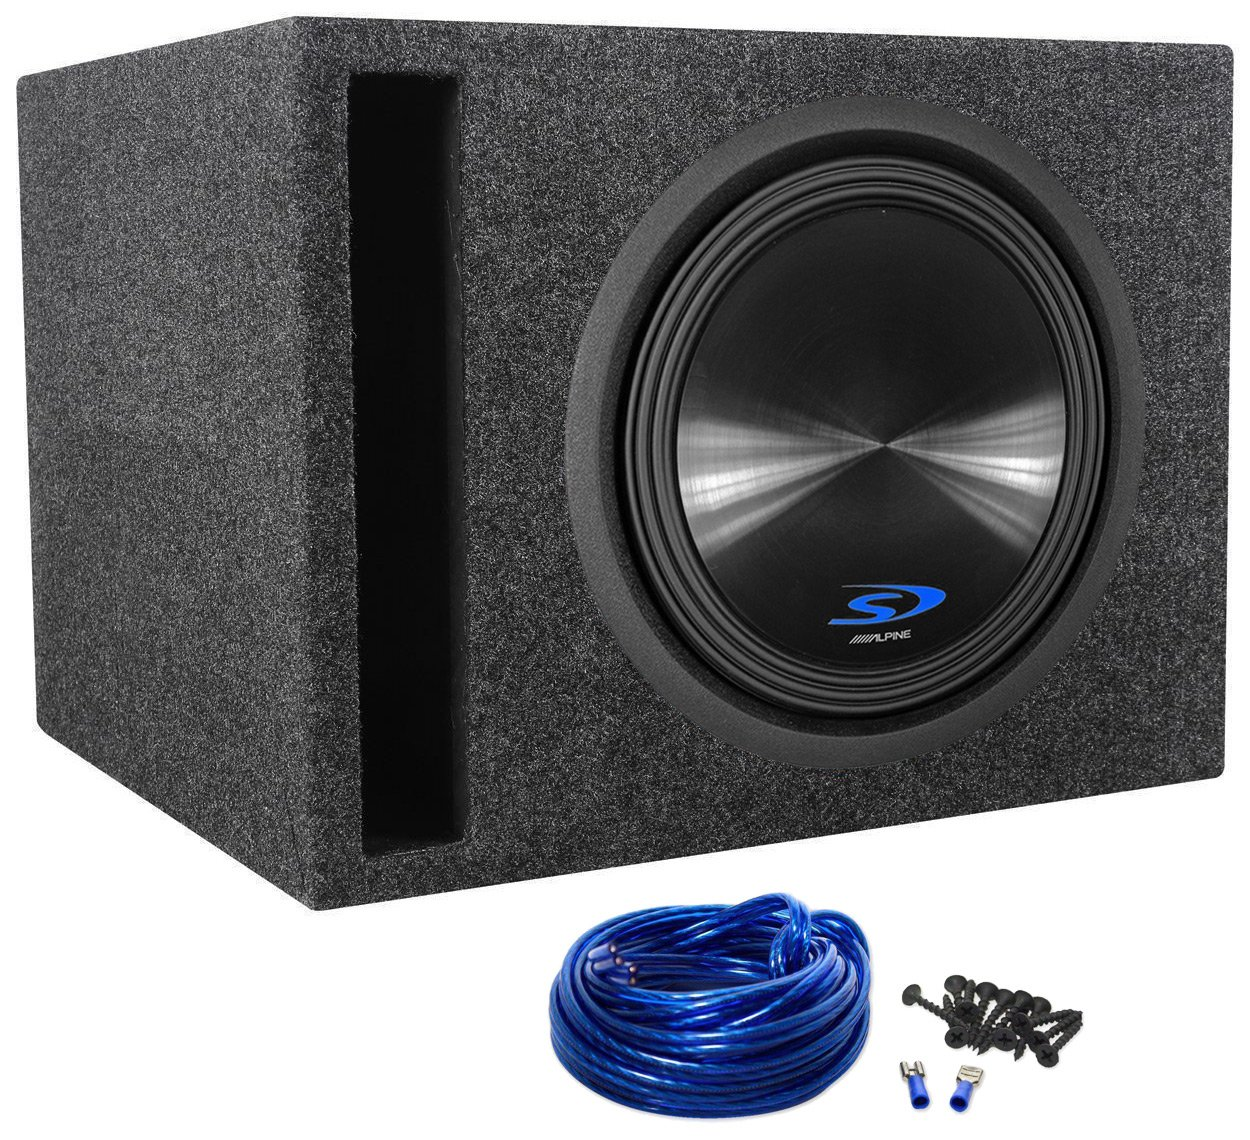 Package Alpine Type S Sws 12d2 12 1500 Watt Dual 2 Ohm Subwoofer Wiring Kits For Cars Car Rockville Rsv12 Single Vented Enclosure Sub Box Wire